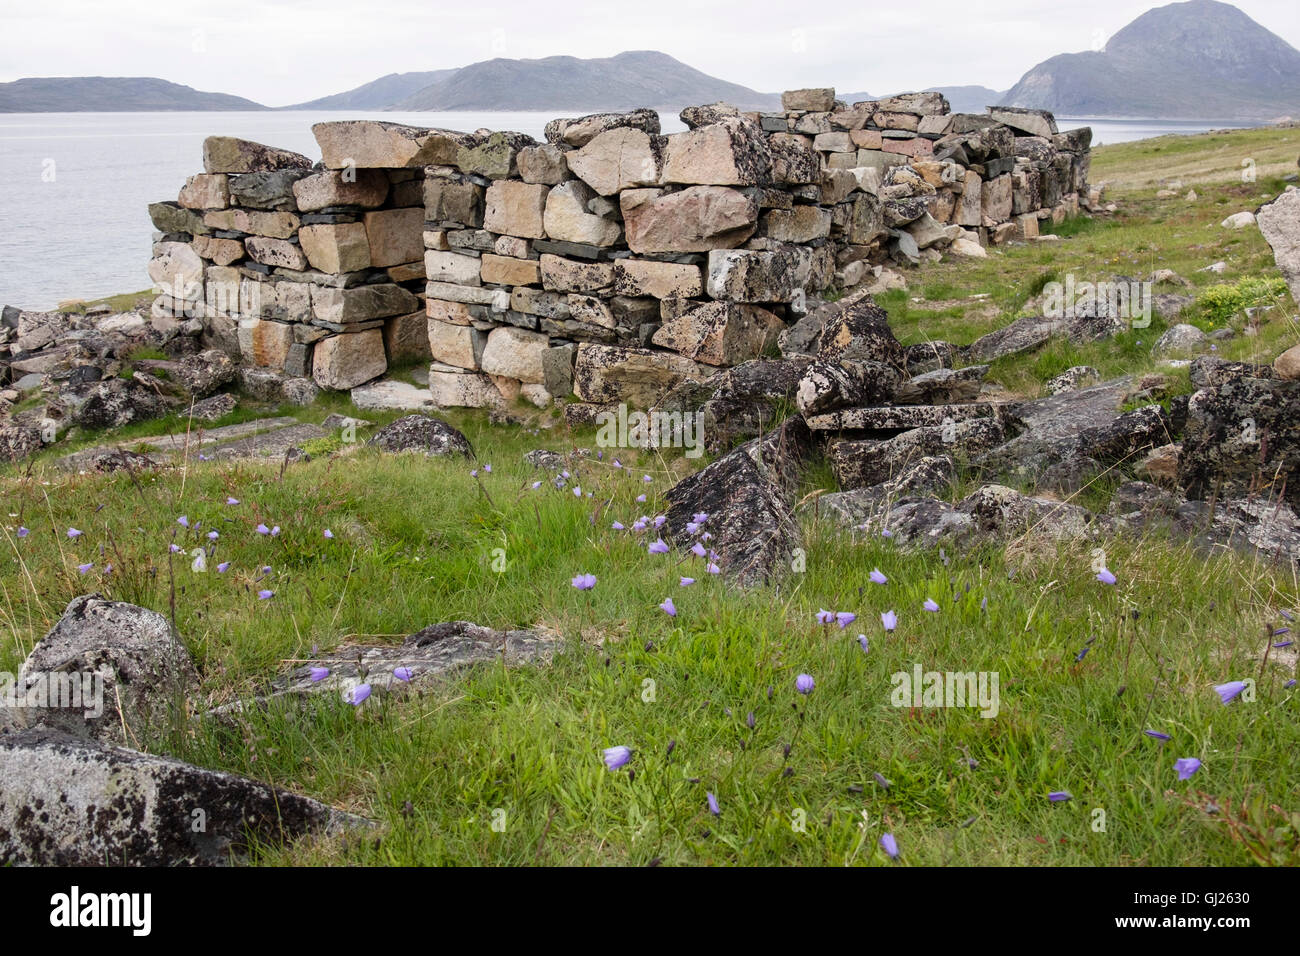 Remains of 14thc Hvalsey farmstead Banquet Hall, one of best preserved Norse ruins in the country. Hvalsey, Qaqortoq, - Stock Image